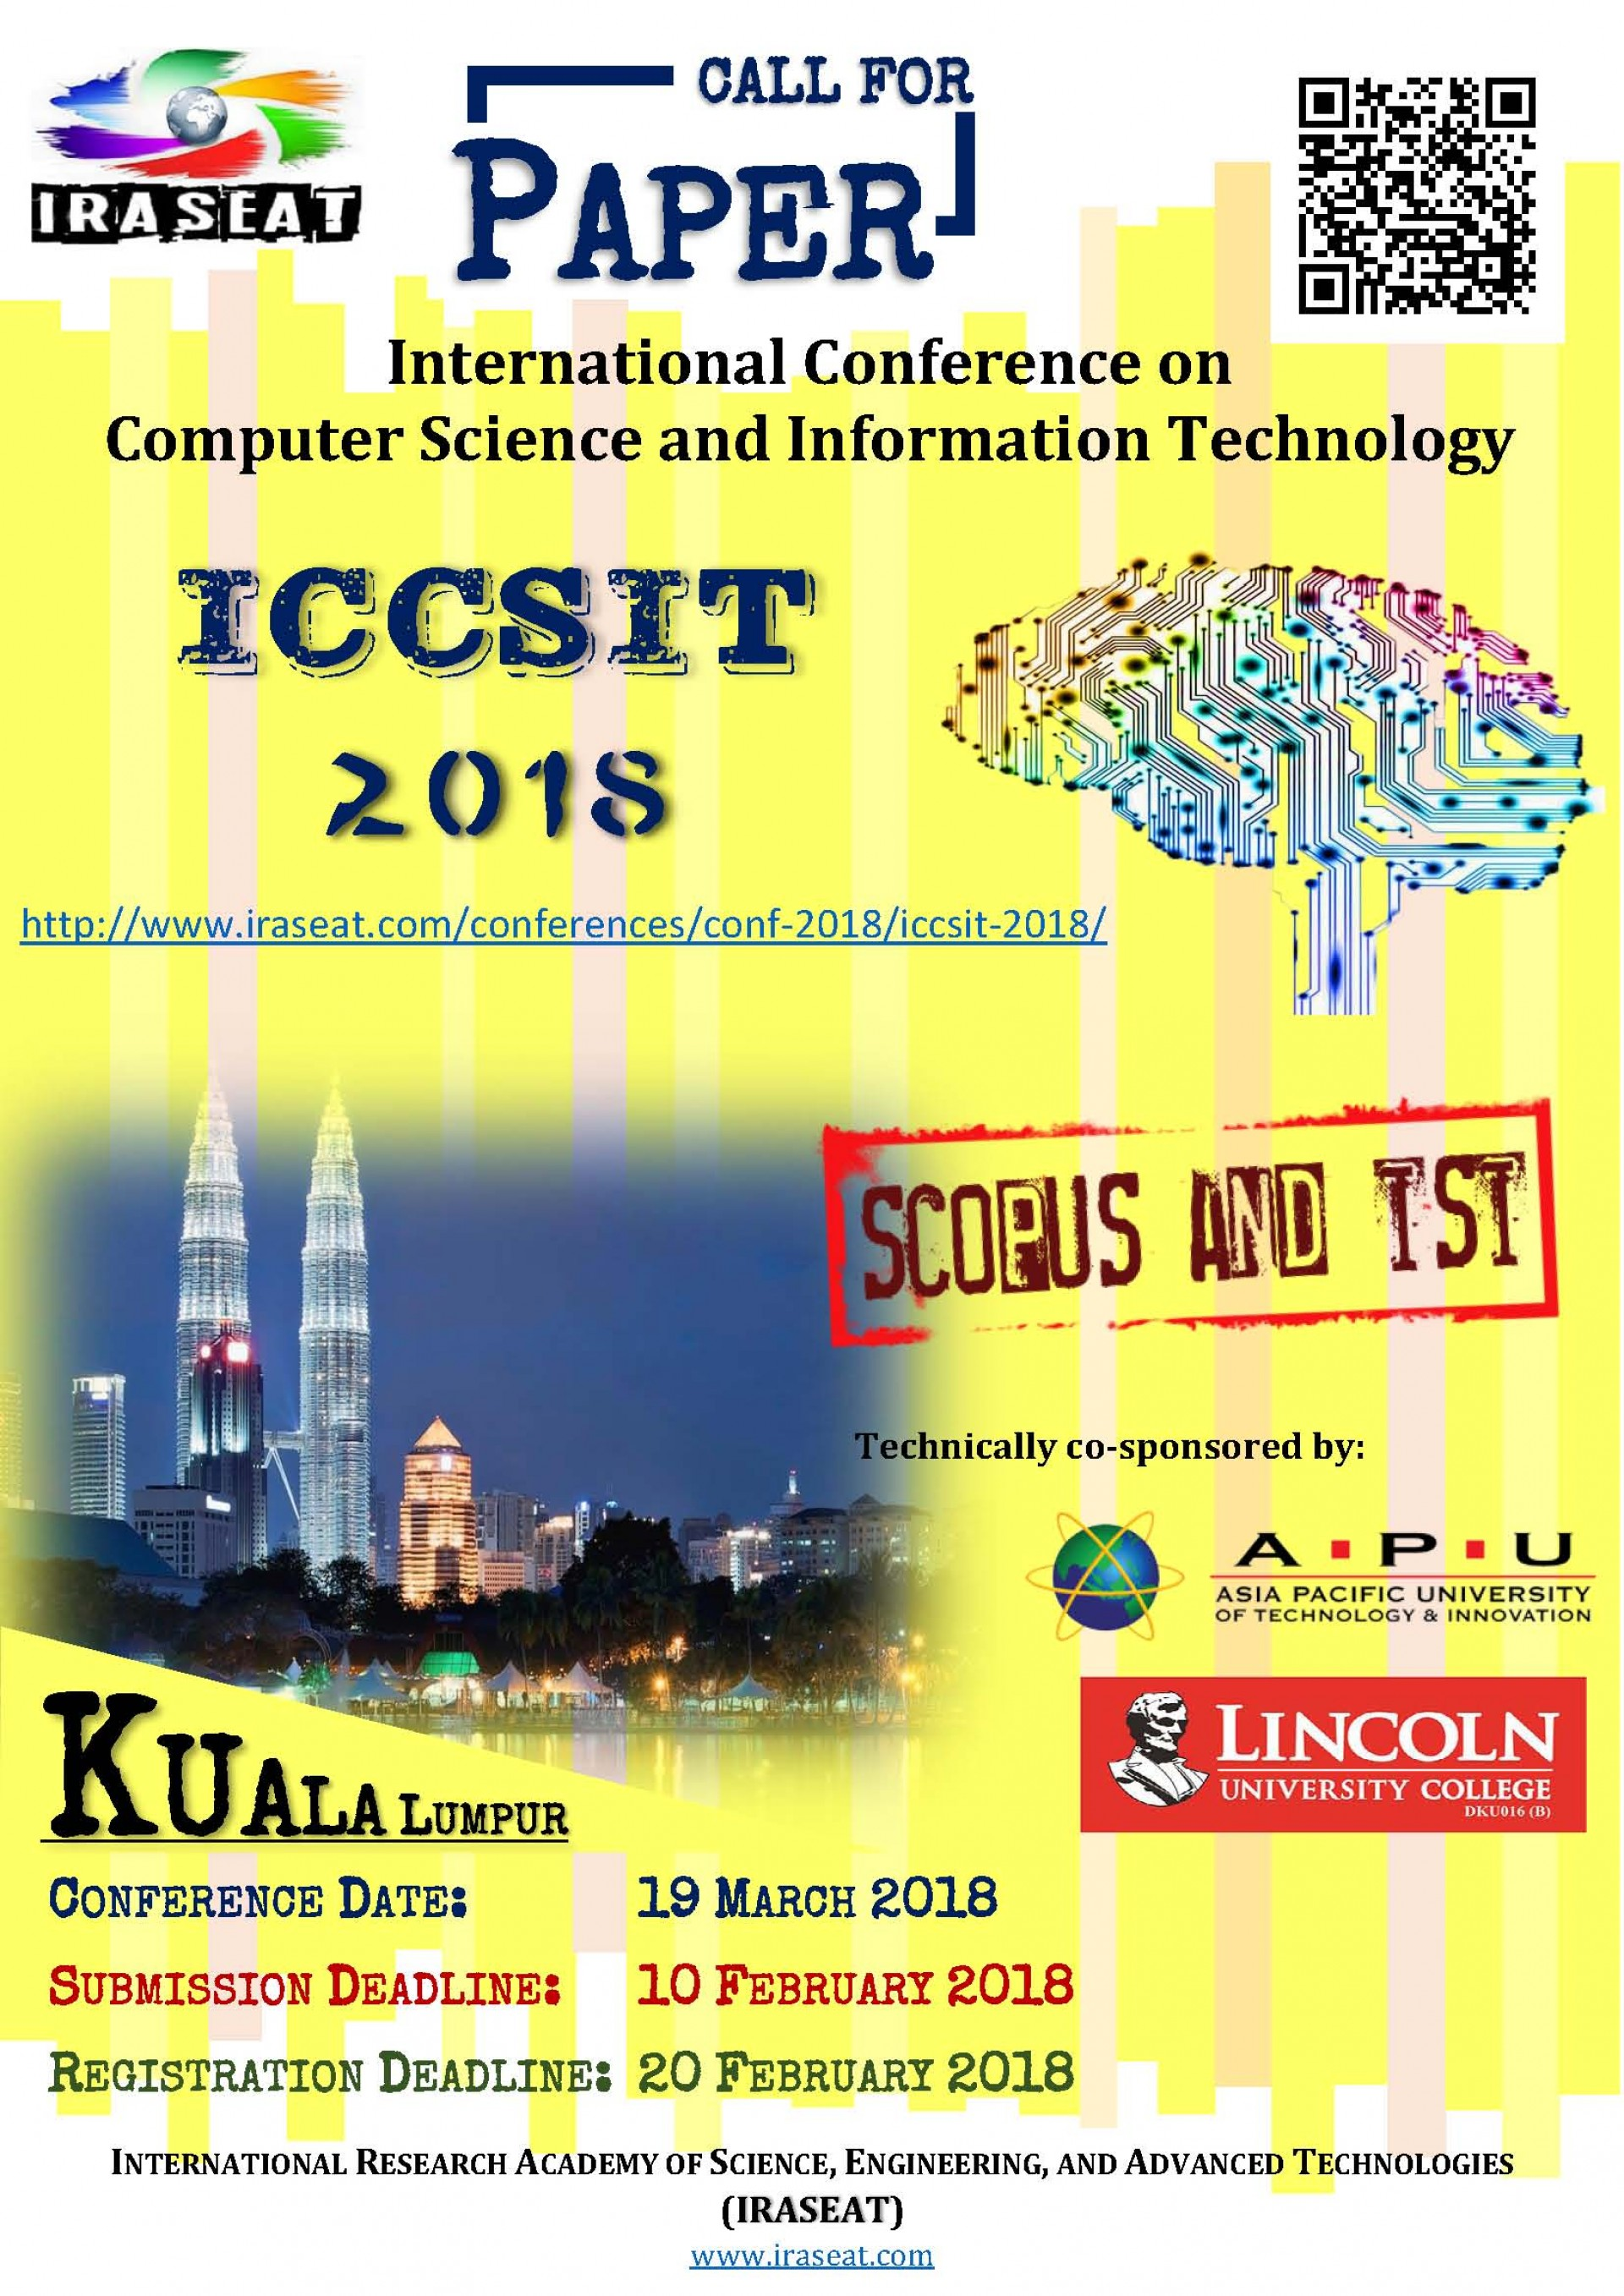 018 Latest Researchs In Computer Science Cfp Iccsit Dreaded Research Papers 2018 Paper 1920